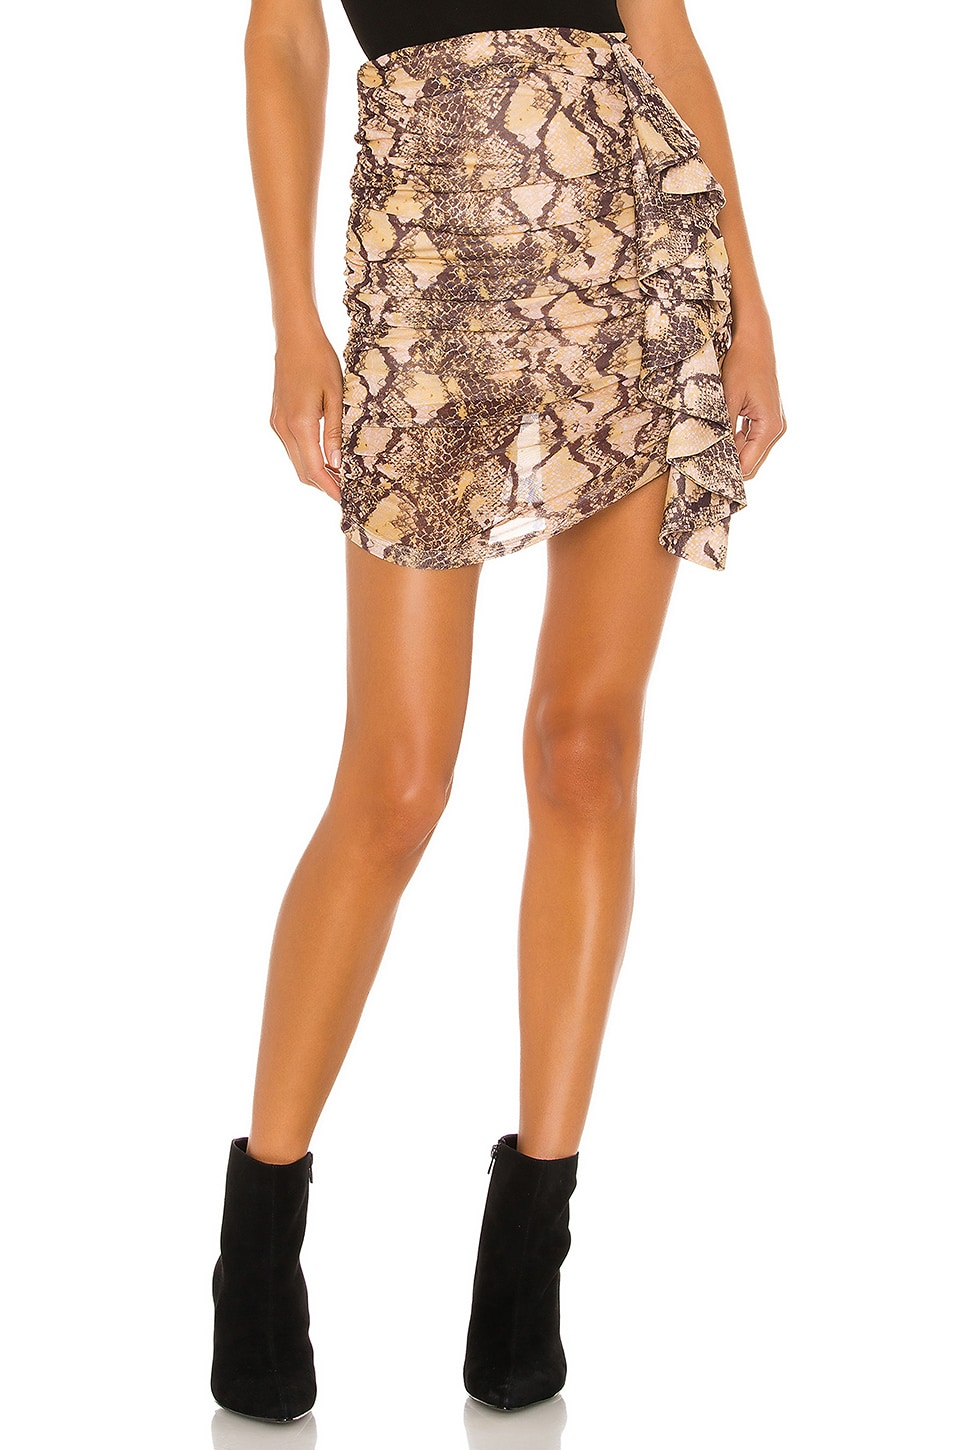 House of Harlow 1960 x REVOLVE Gemma Mini Skirt in Python Multi